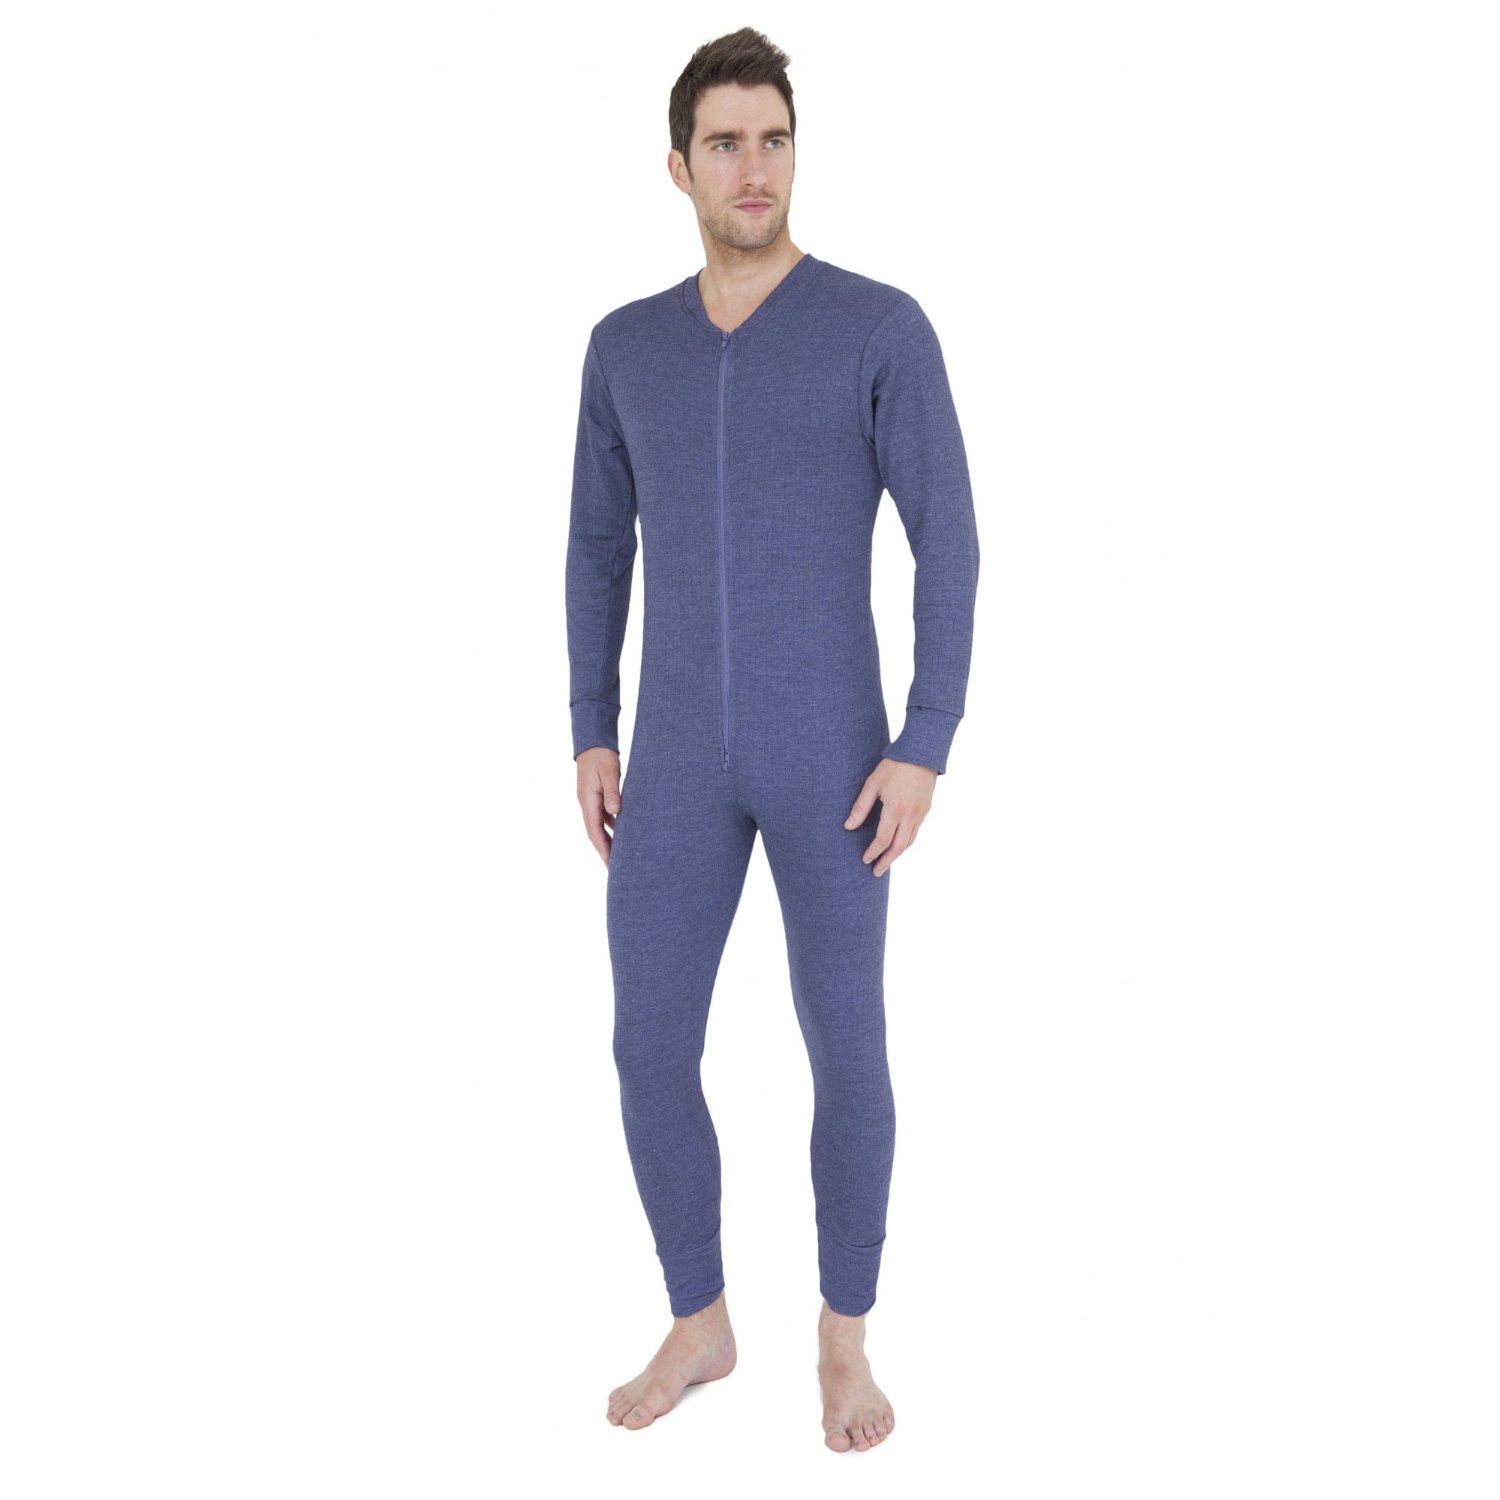 Mens Thermal Underwear All In One Union Suit. Full body ... e7ae864f7